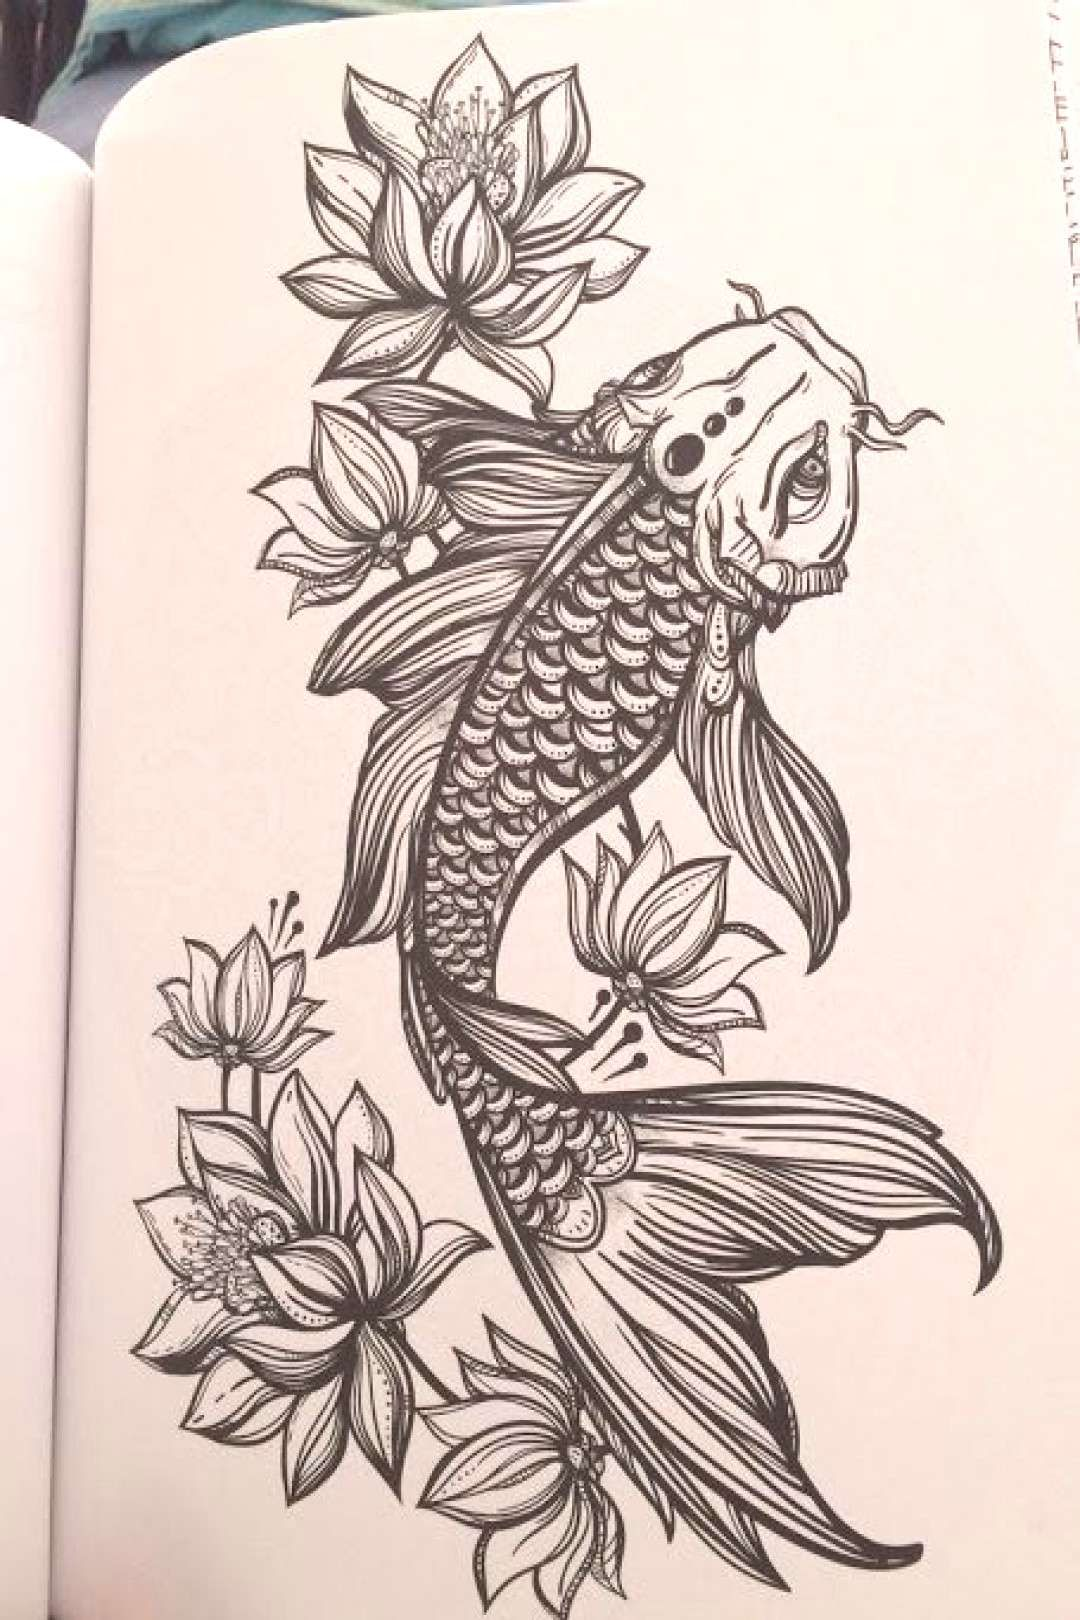 Mysterious Meanings Tattoo10 Designs Tattoo Fish Koi And 10 10 Mysterious Koi Fish In 2020 Koi Fish Drawing Tattoo Koi Fish Tattoo Tattoo Designs And Meanings